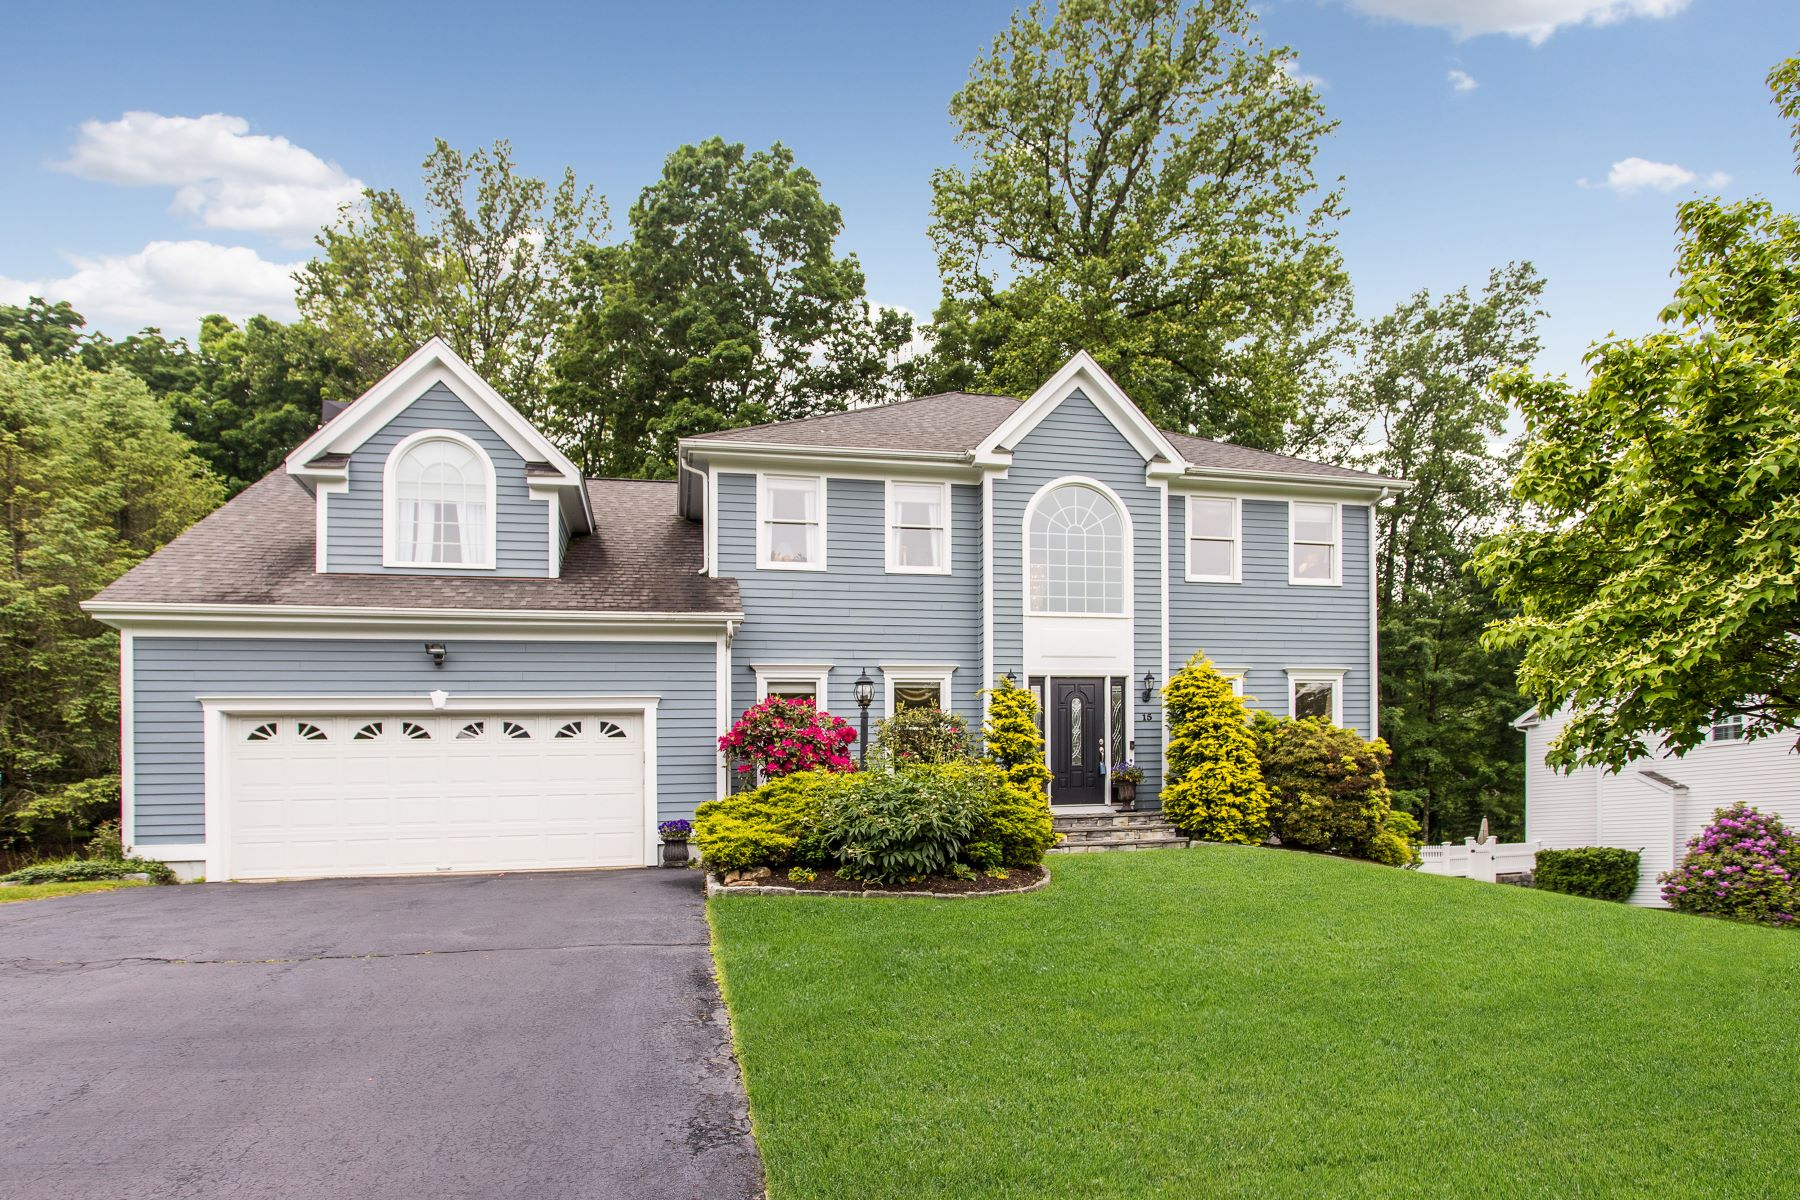 single family homes for Sale at Spacious Tashua Colonial 15 Sarenee Circle, Trumbull, Connecticut 06611 United States